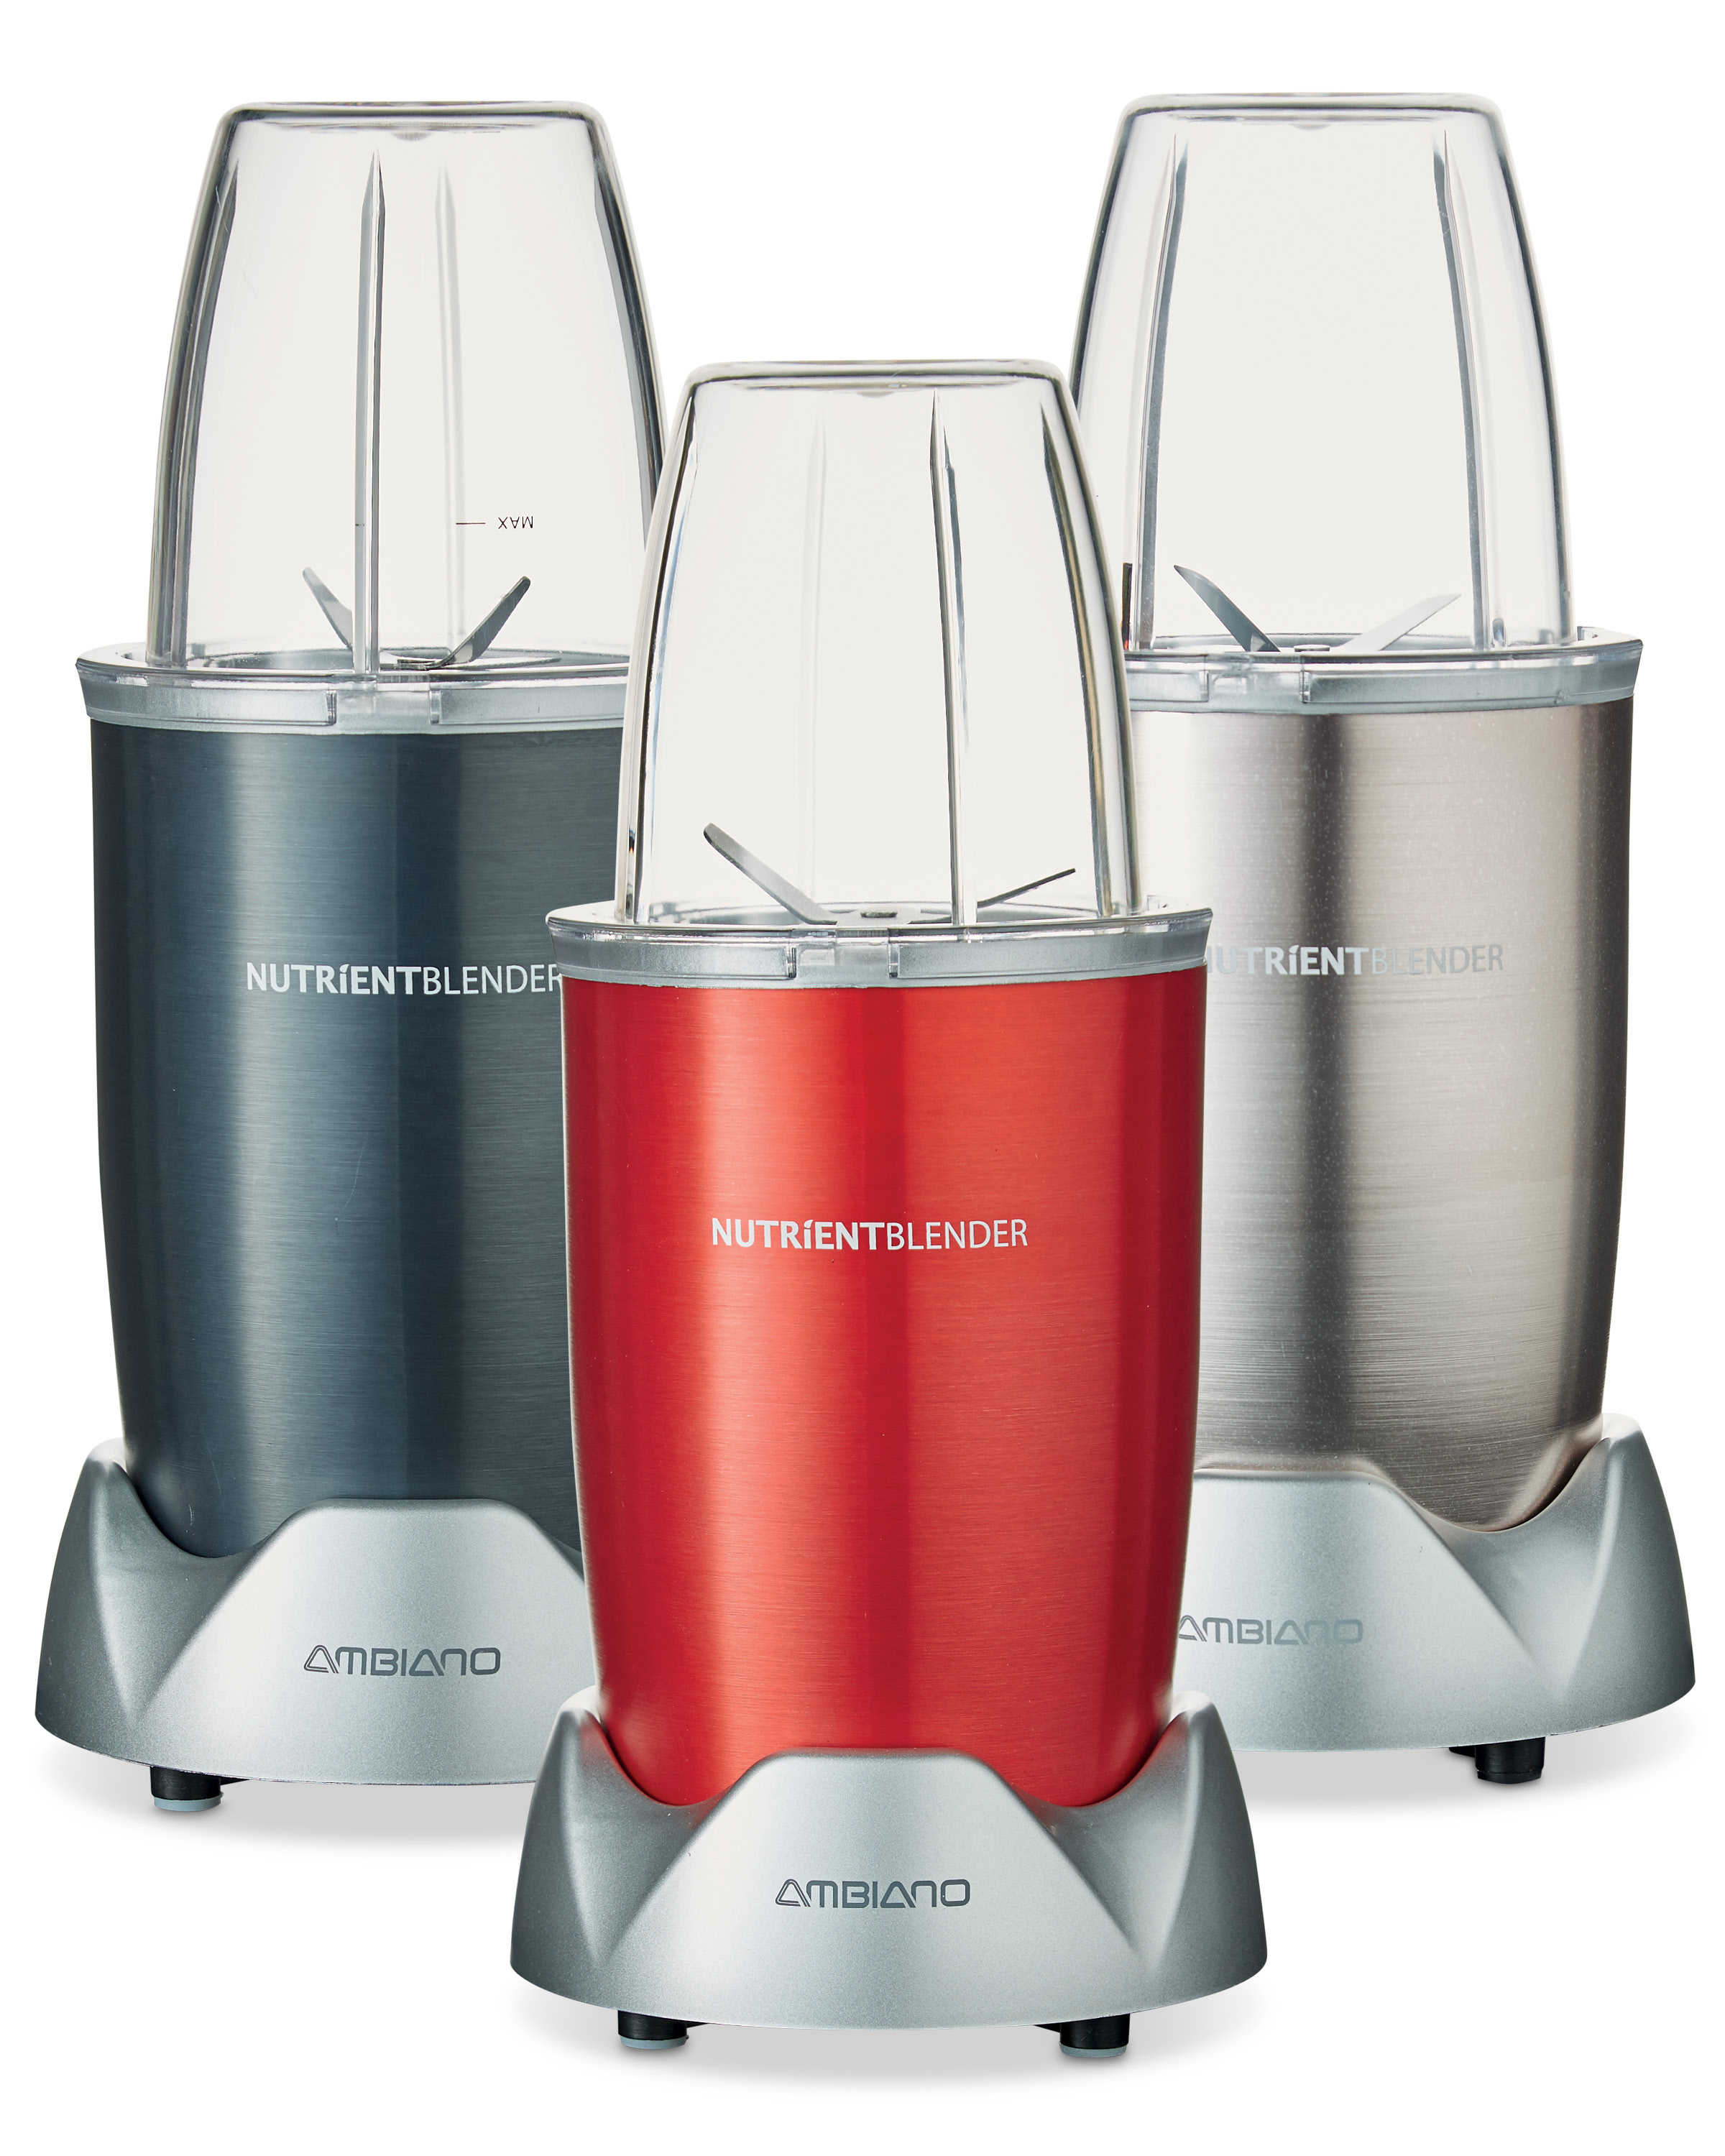 https://cdn.aldi-digital.co.uk/Nutrient-Blender-A.jpg?o=msQ7WoL7evBHPG7FT9h7YHyys38j&V=HuIY&p=2&q=50